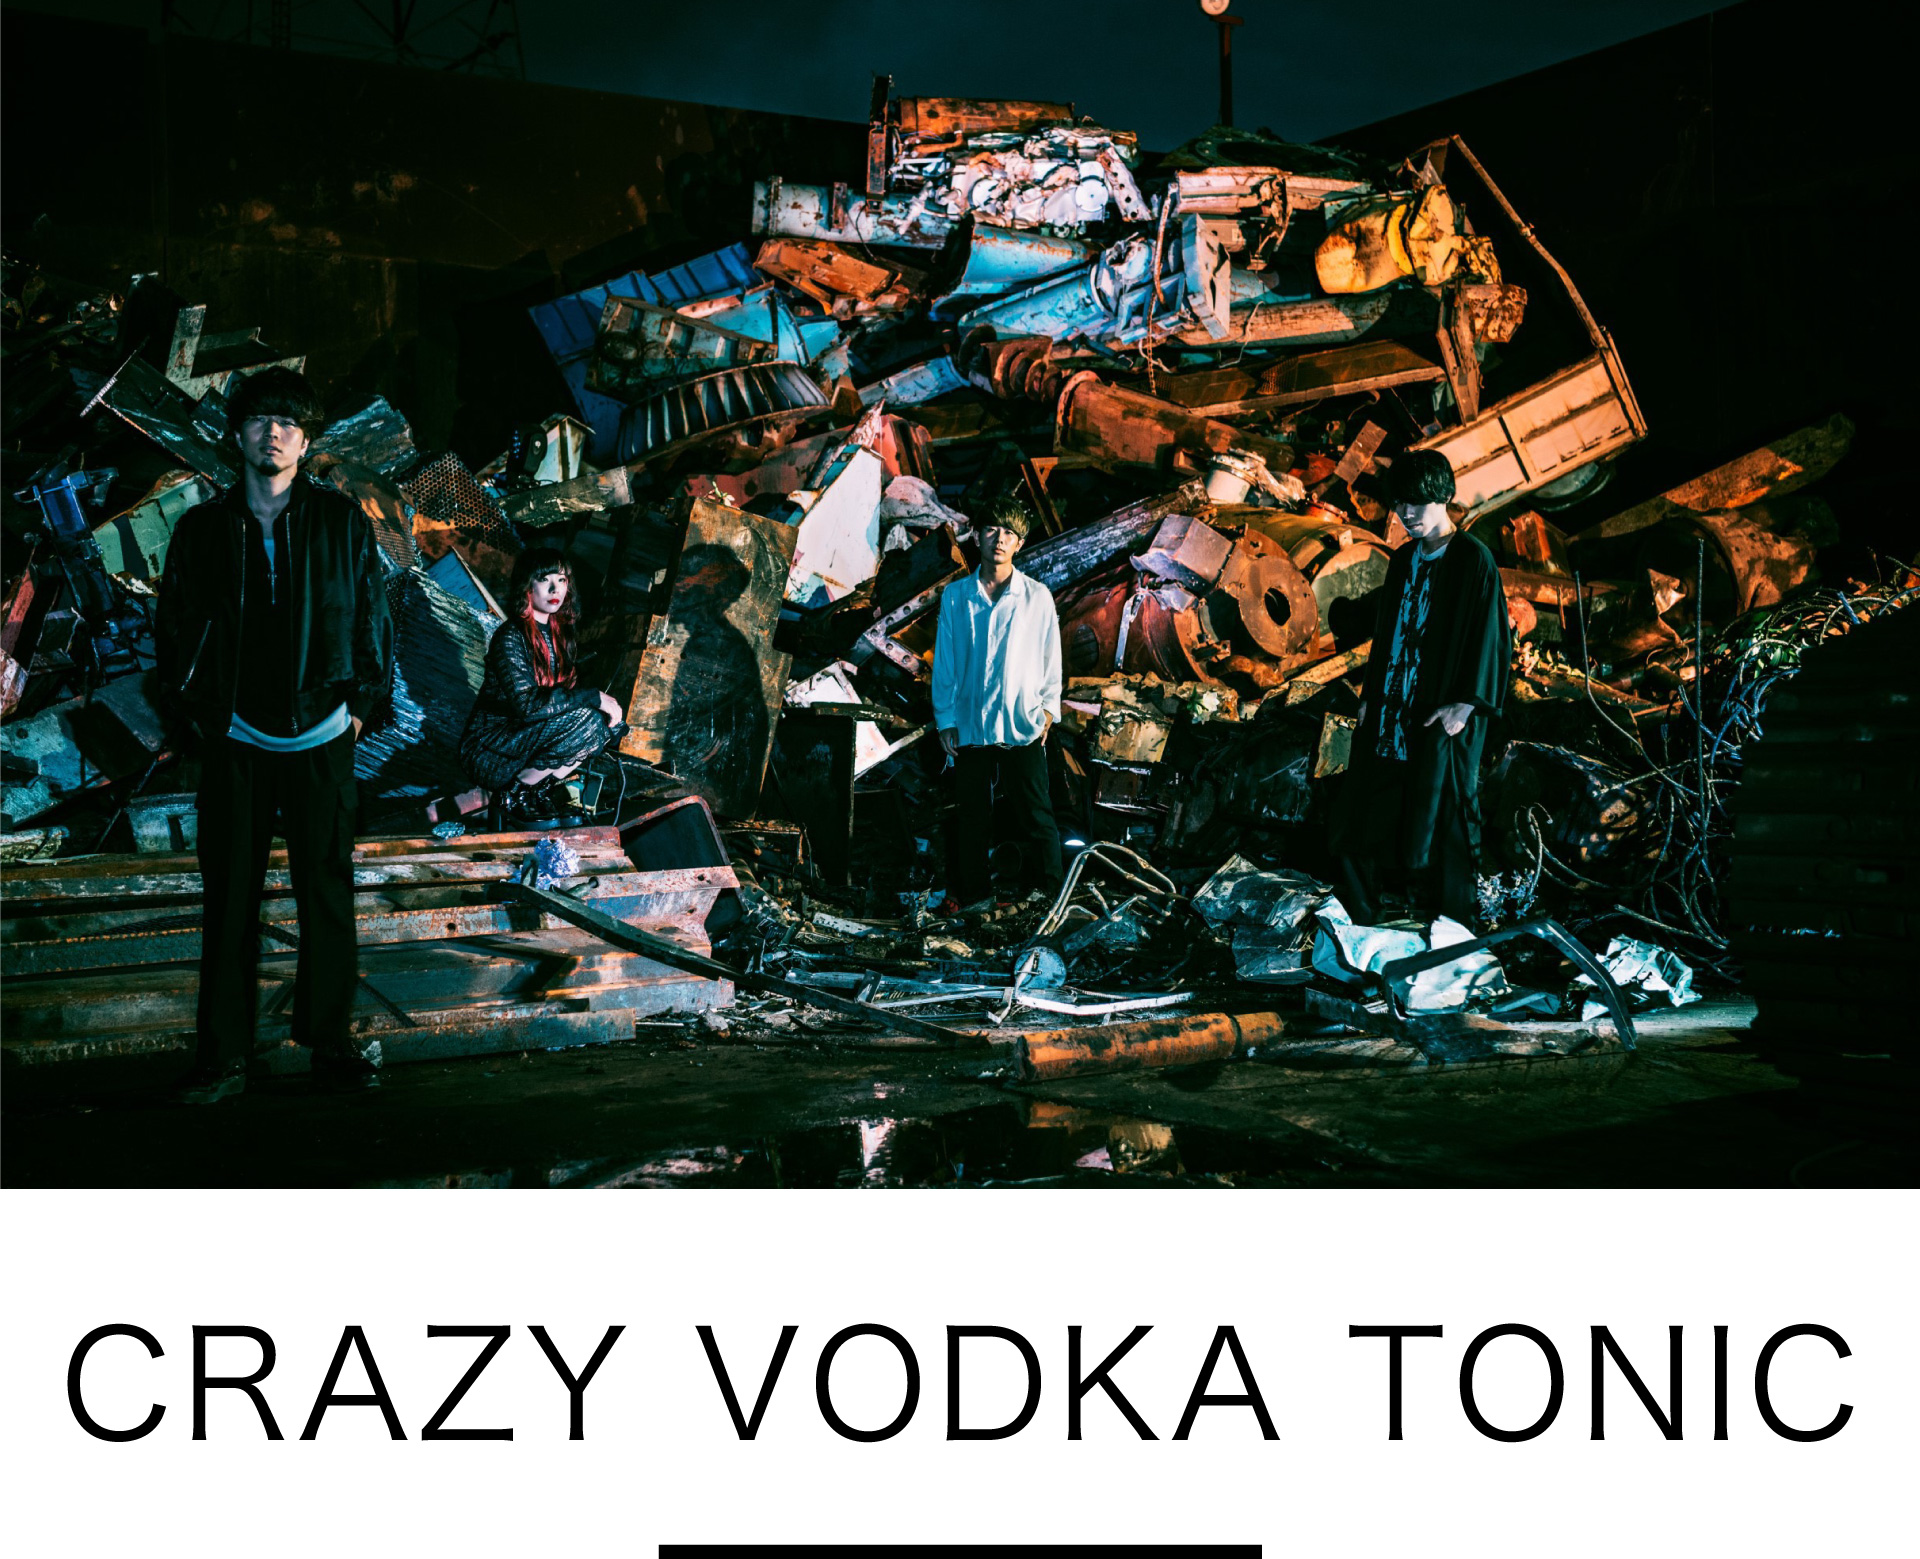 CRAZY_VODKA_TONIC